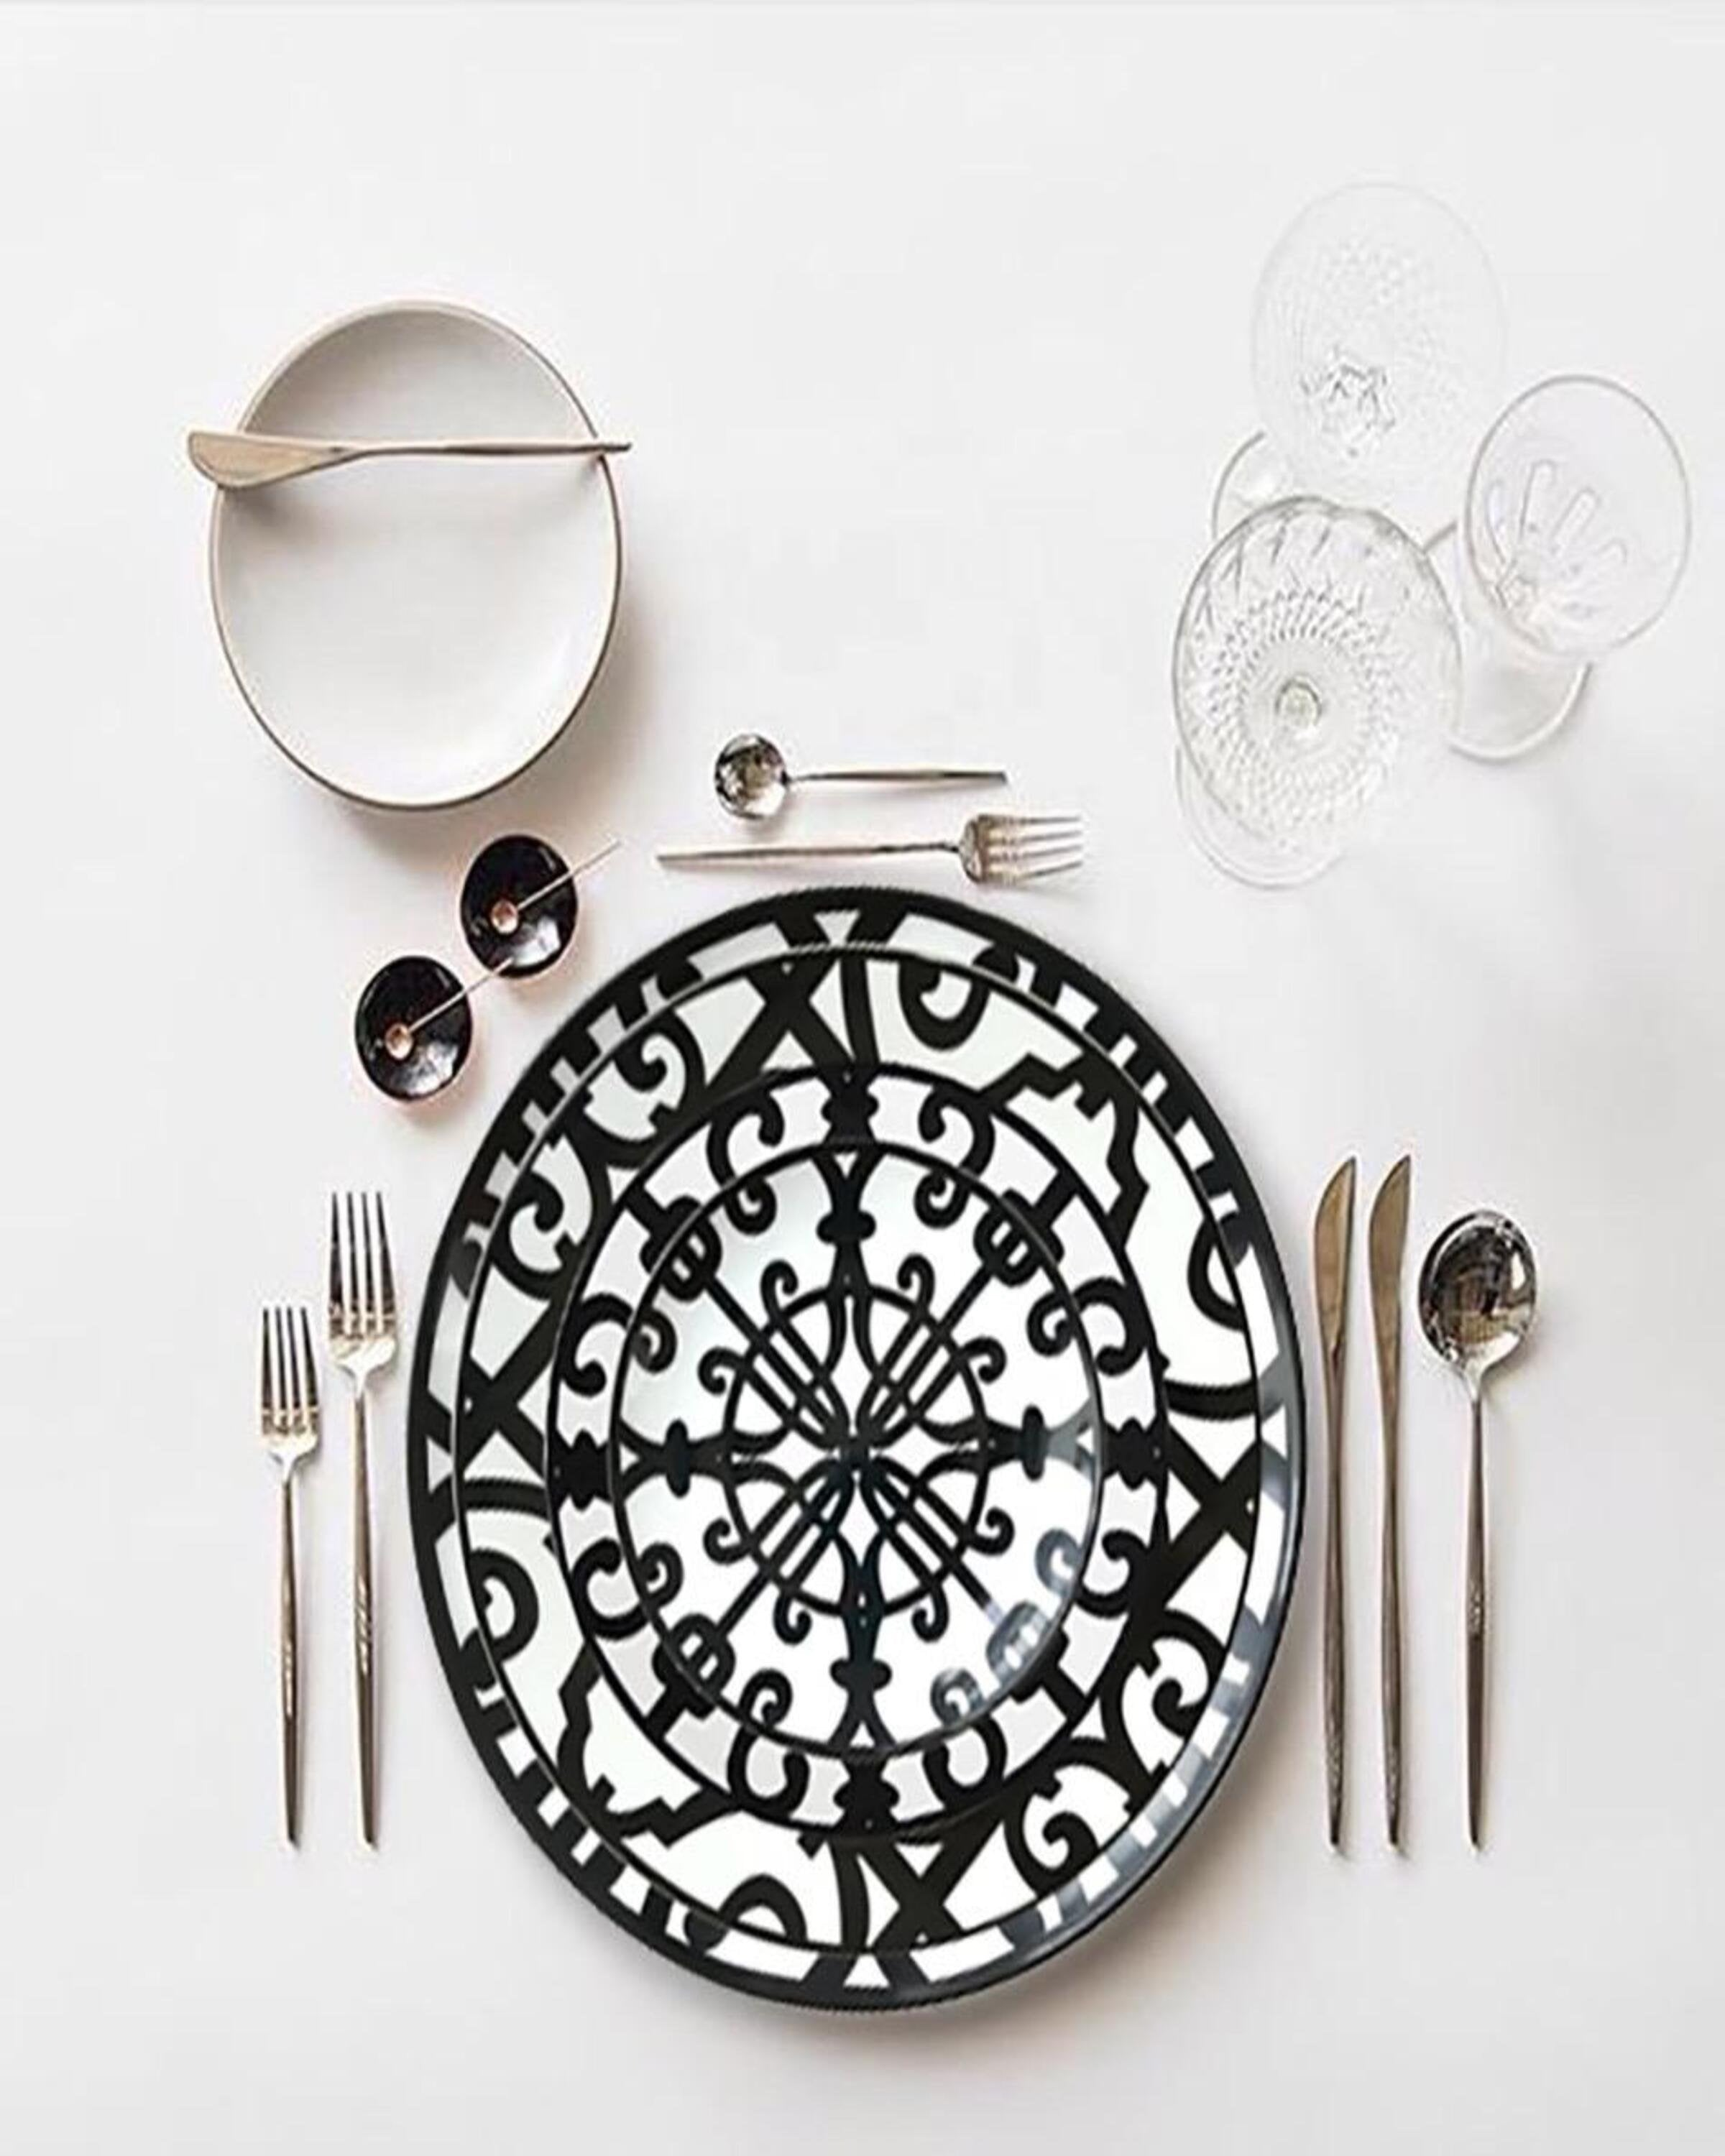 Bibe Unique Black and White Dinner Set ANGIE KRIPALANI DESIGN - ANGIE HOMES- ANGIES INDIA